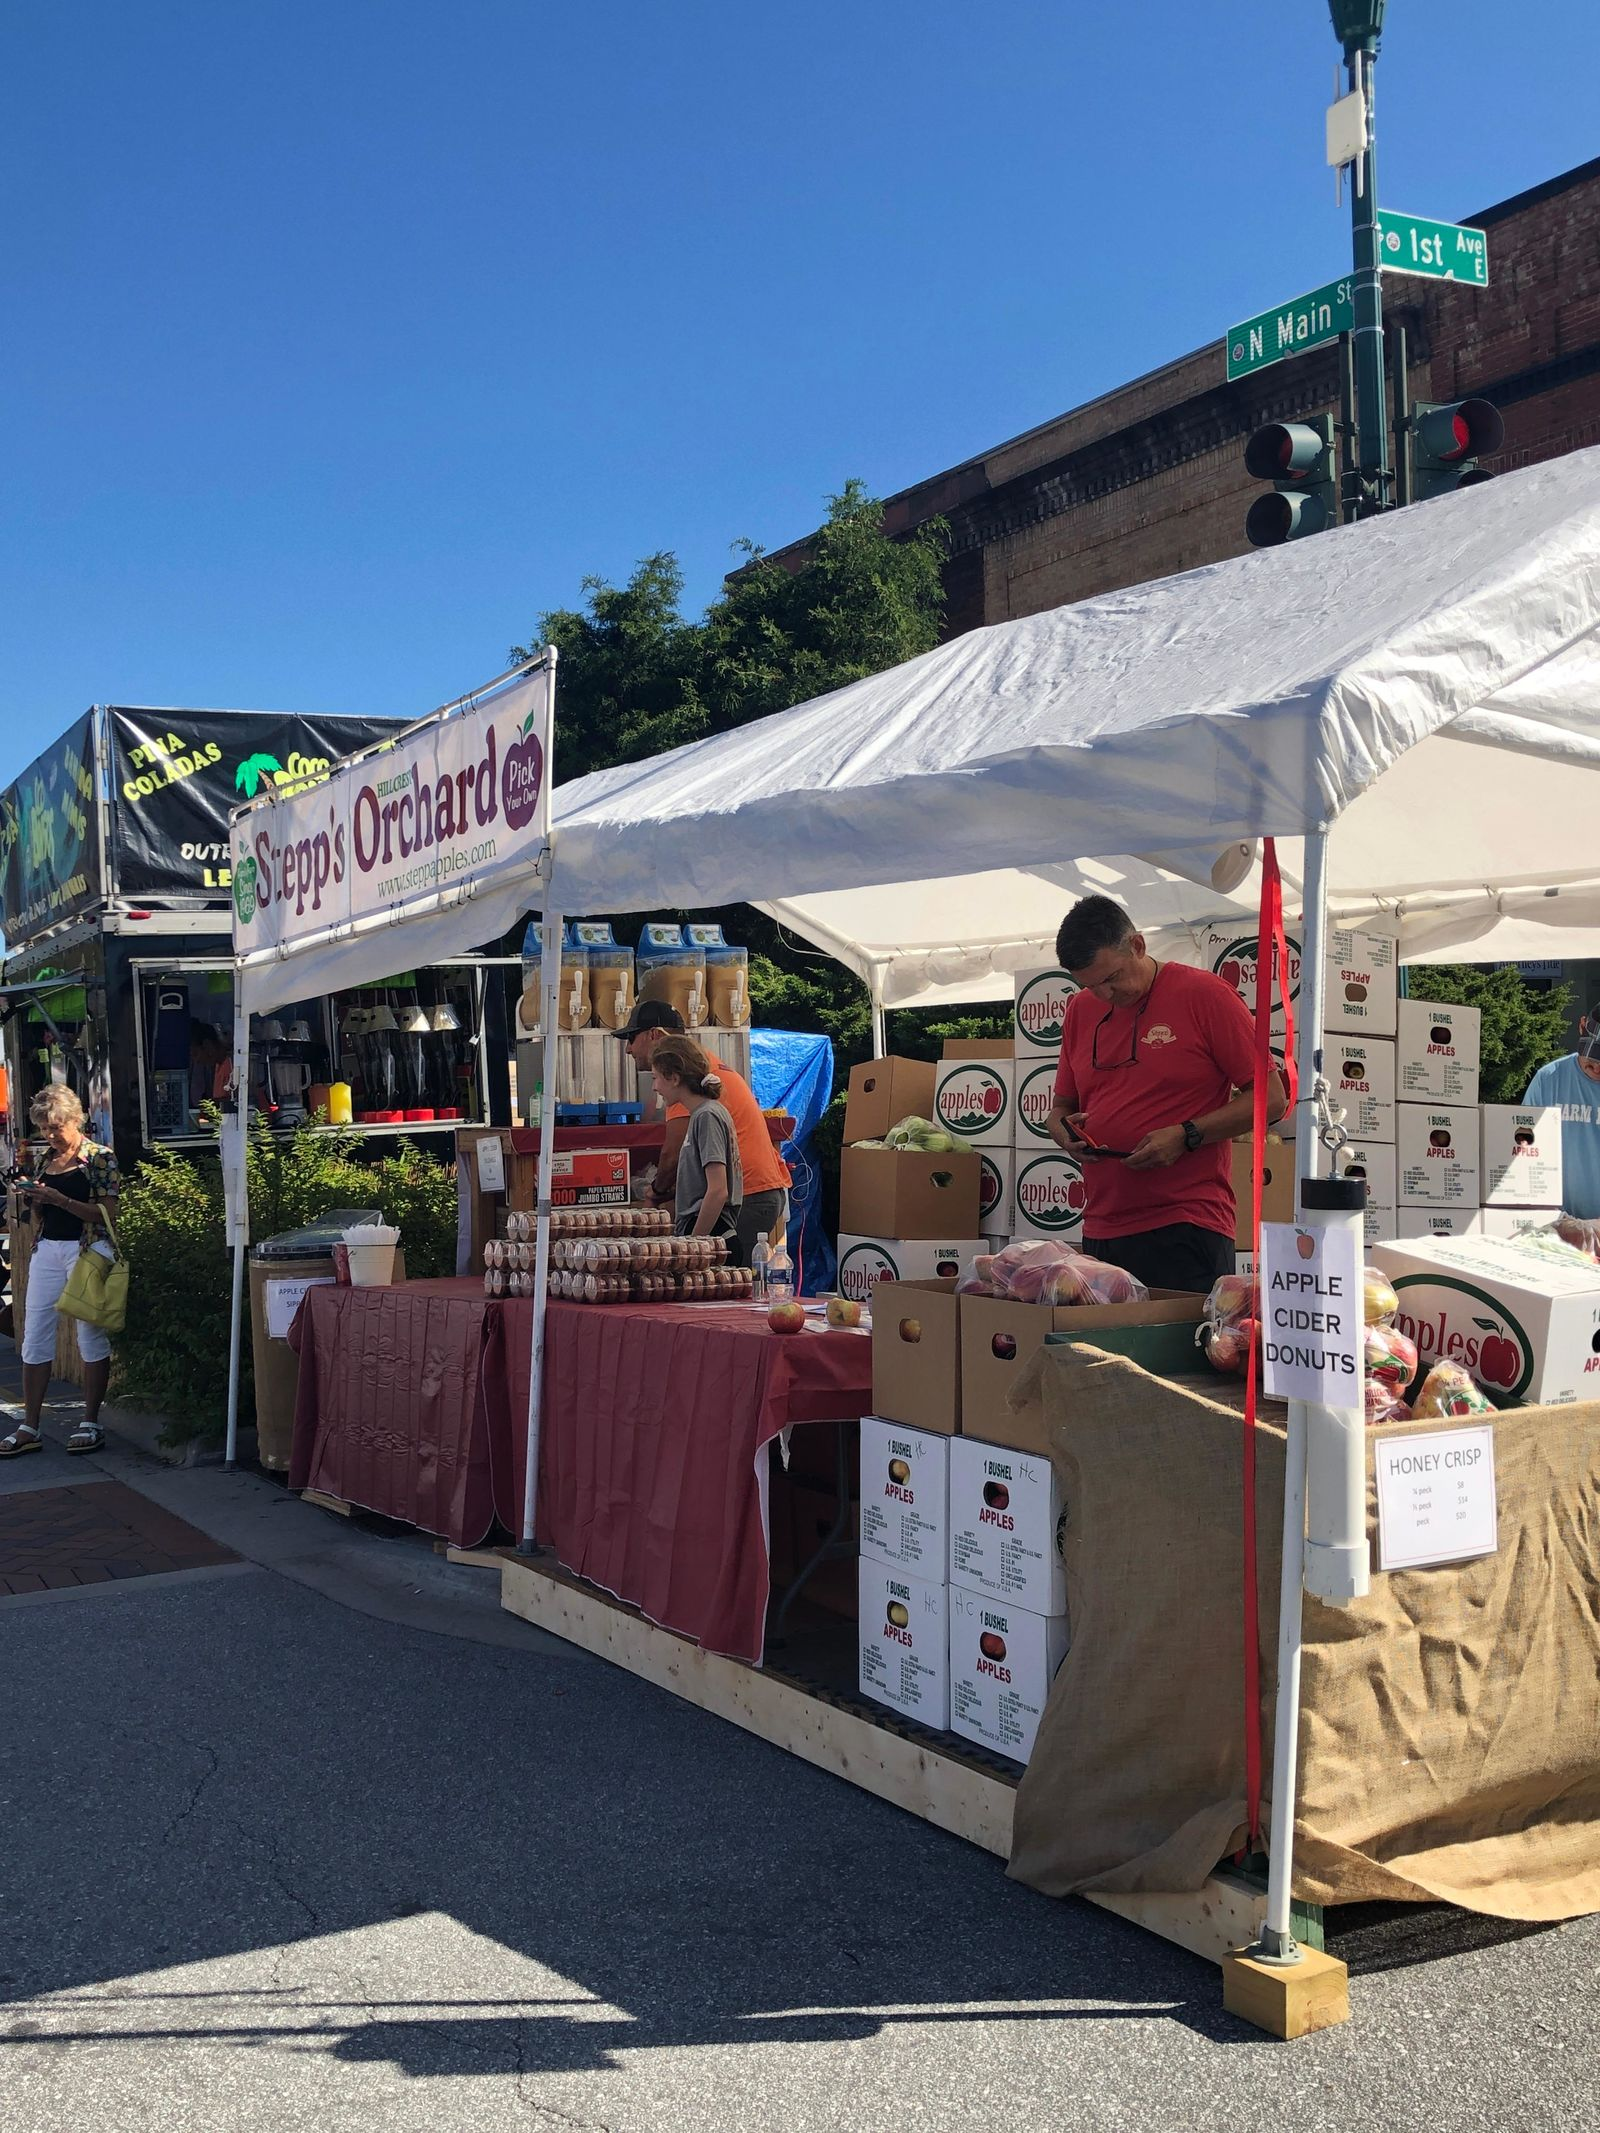 The North Carolina Apple Festival is set for Aug. 30 through Sept. 2. (Photo credit: WLOS staff)